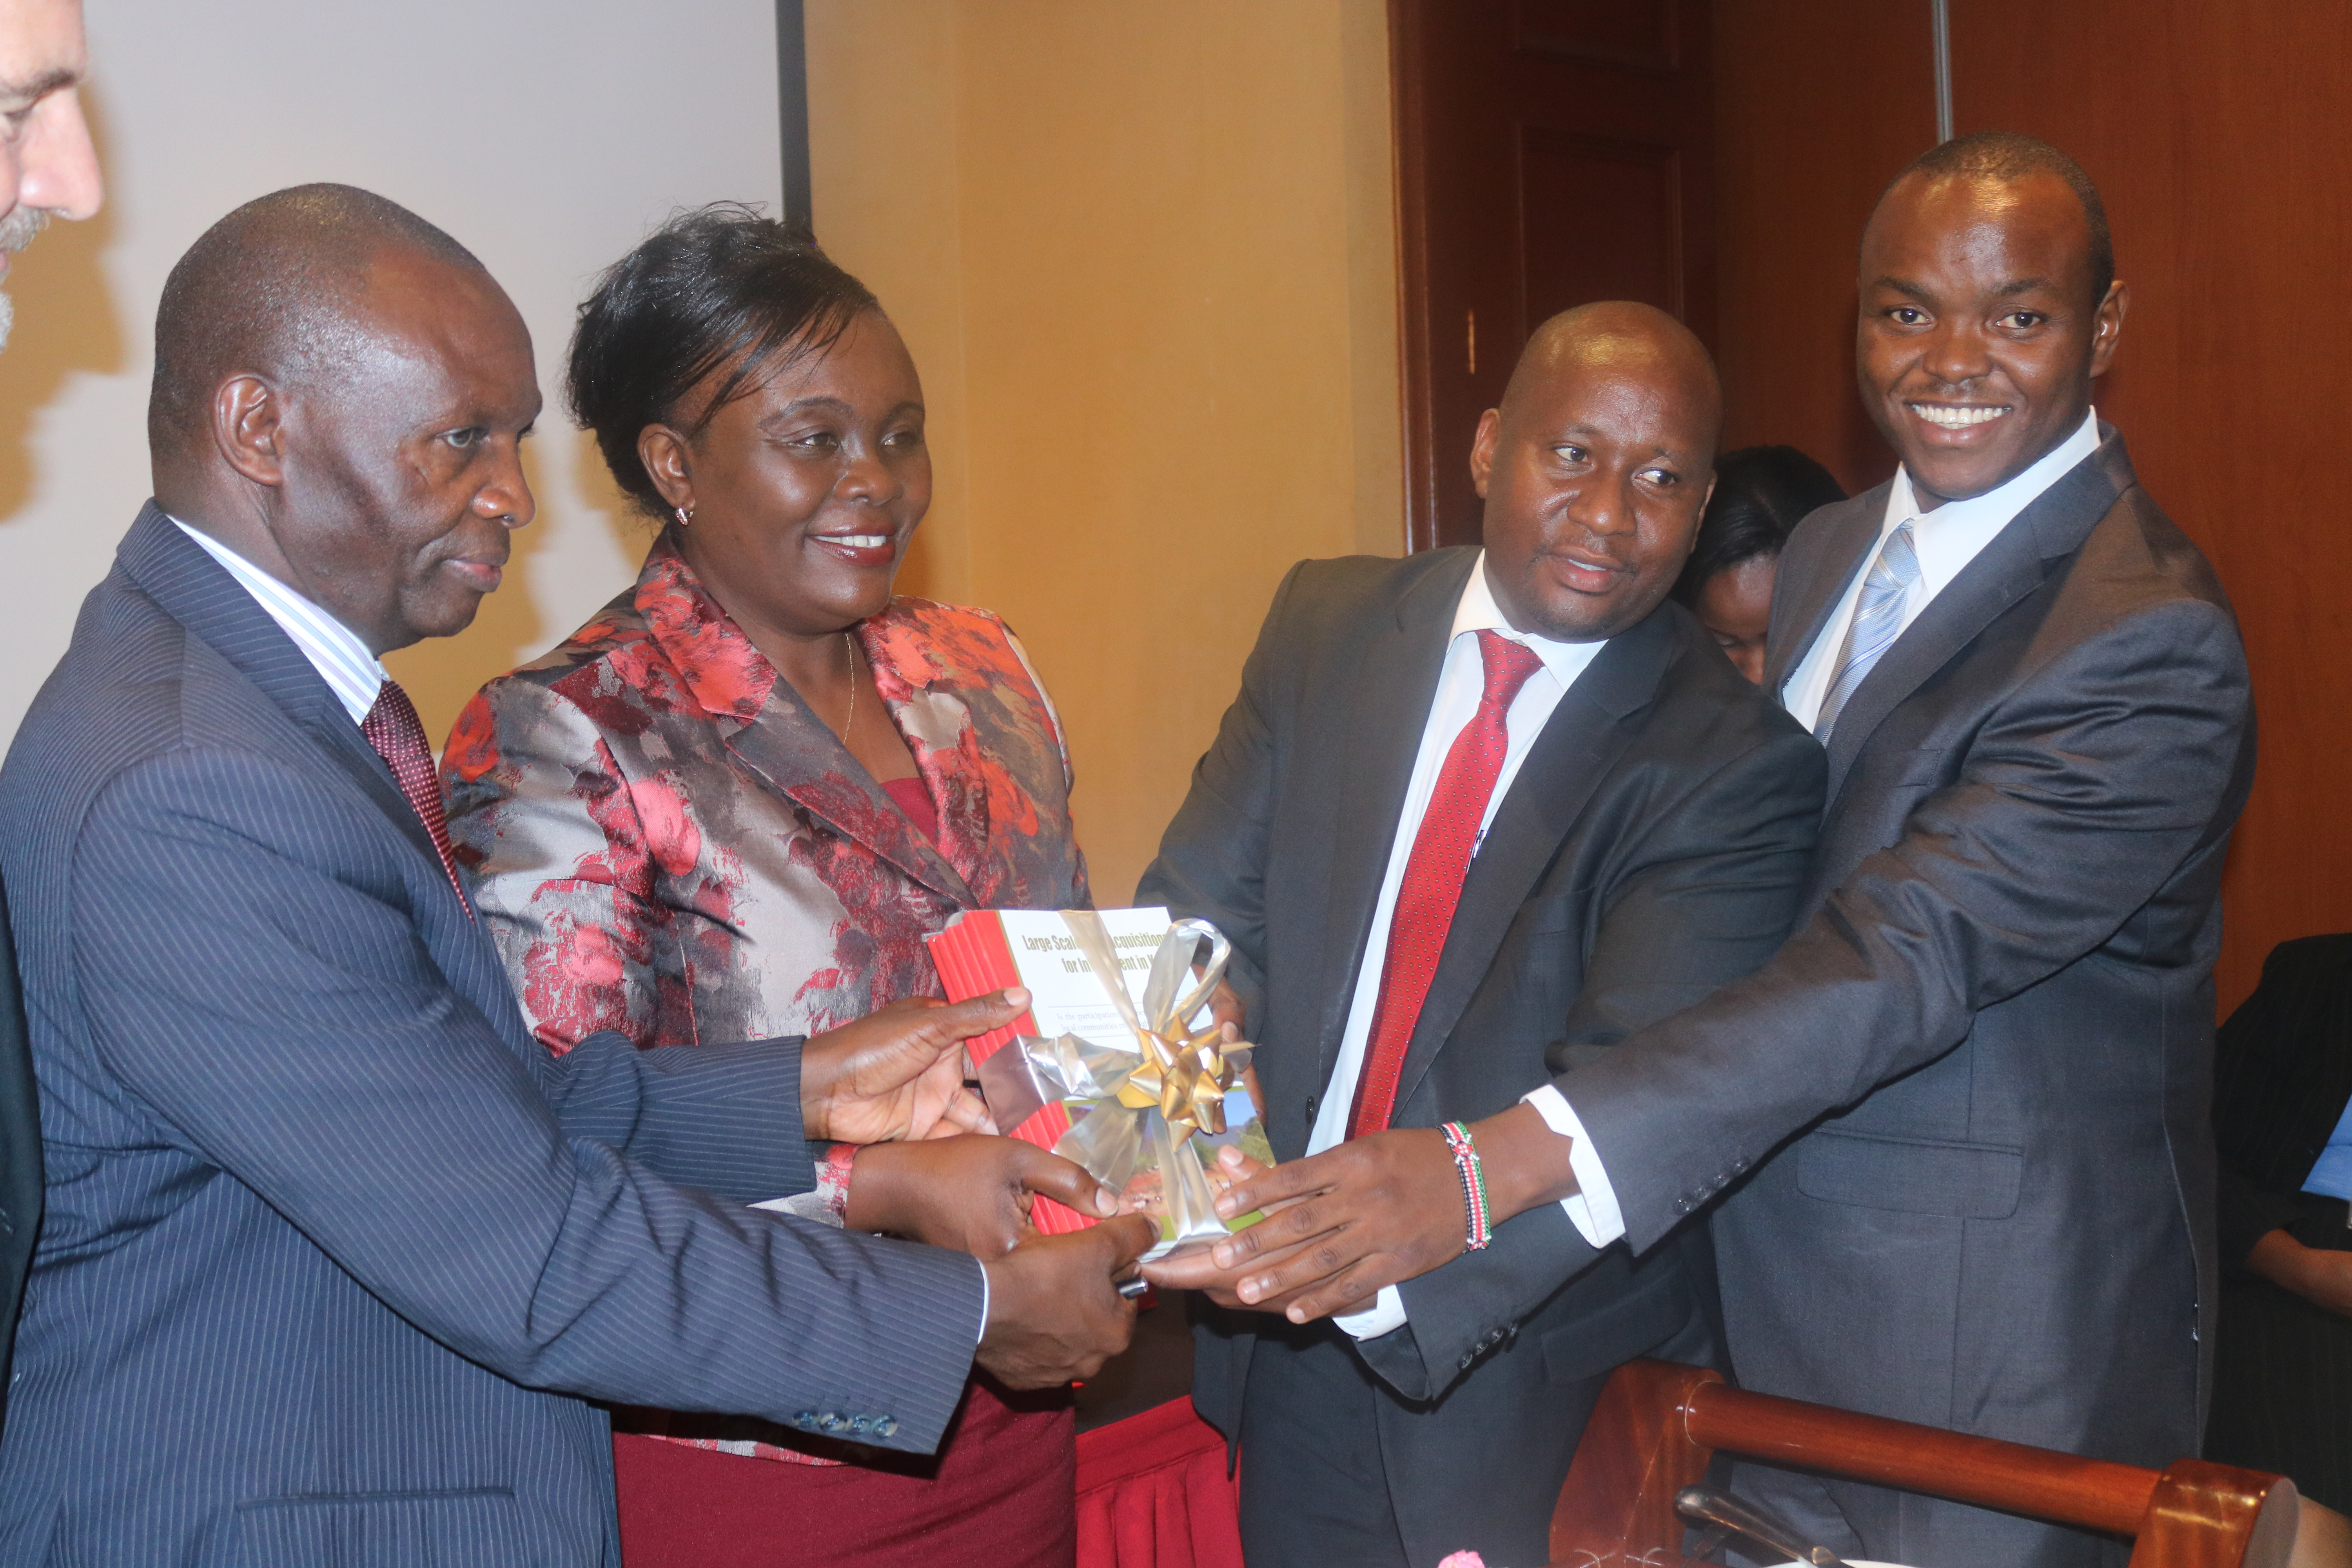 LDGI chairman Ibrahim Mwathane during the launch of the 'Large Scale Land Acquisition for Investments in Kenya' study.